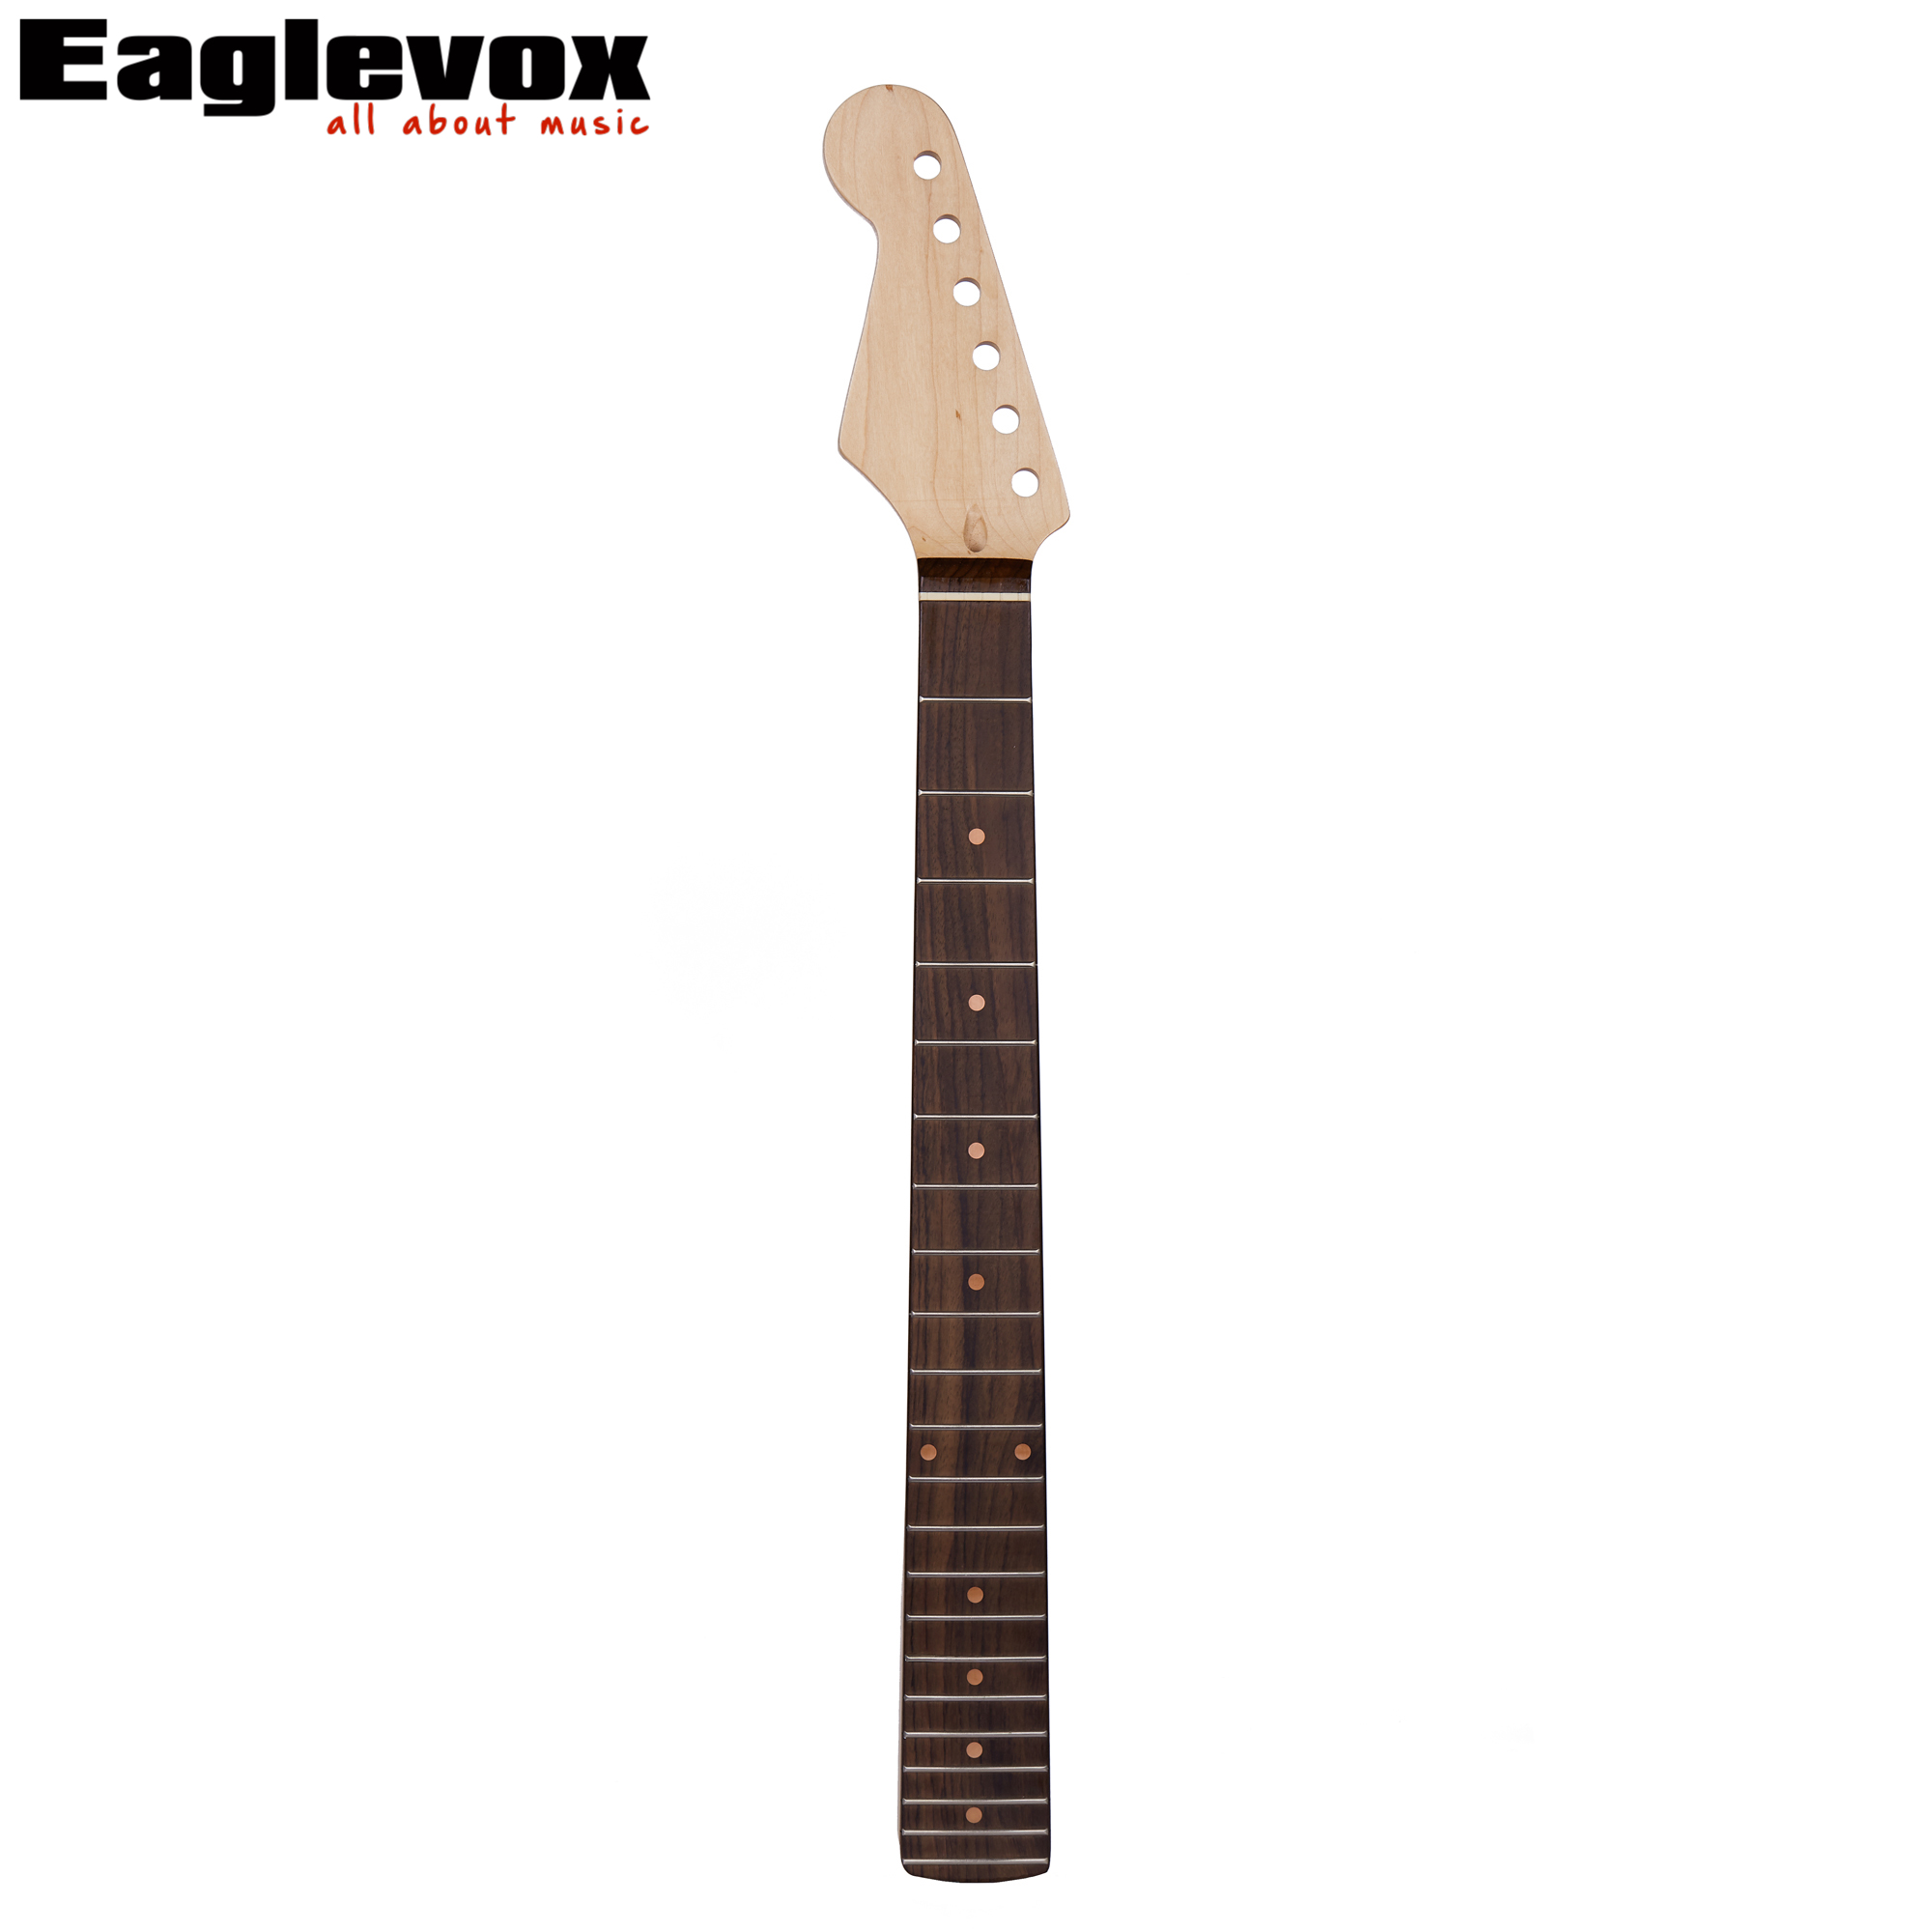 Electric Left Handed Guitar Neck Rosewood fingerboard Made of Maple 10mm Head Machine Peg Hole 22 frets one left unfinished electric bass guitar neck solid wood 22 fret new rosewood fingerboard maple made